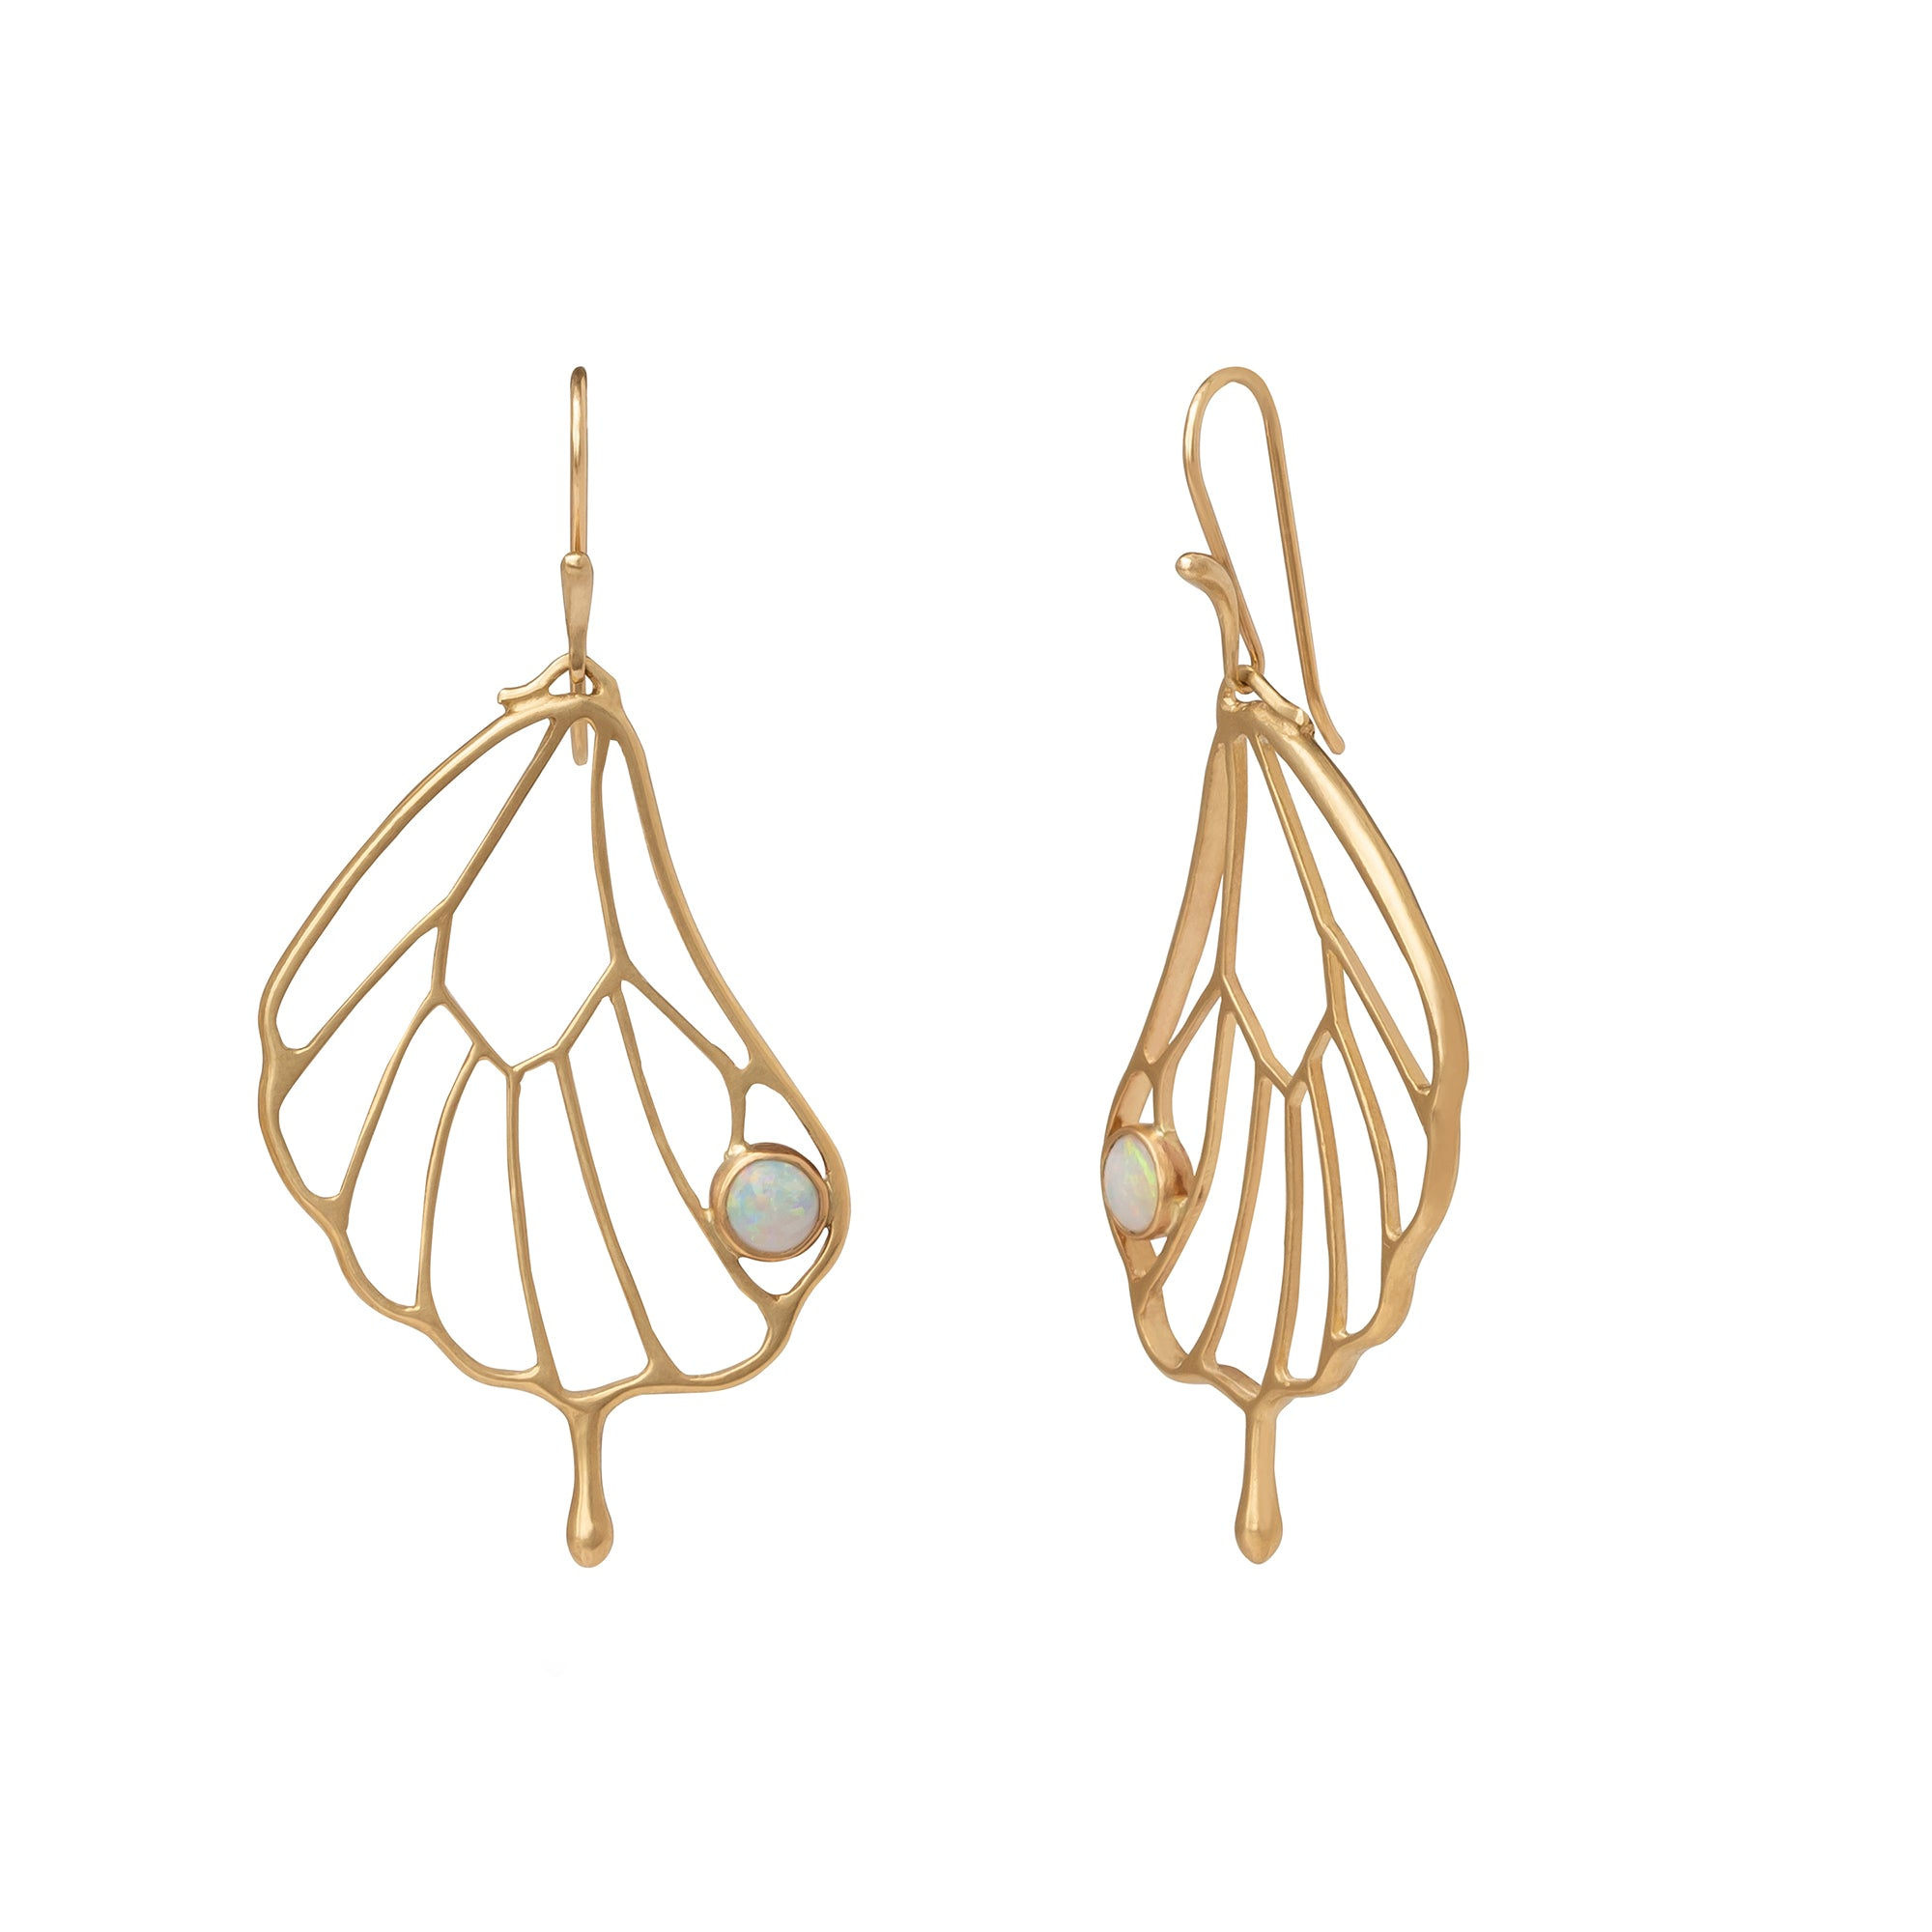 Pampion Wing Earrings - Annette Ferdinandsen - earrings | Broken English Jewelry